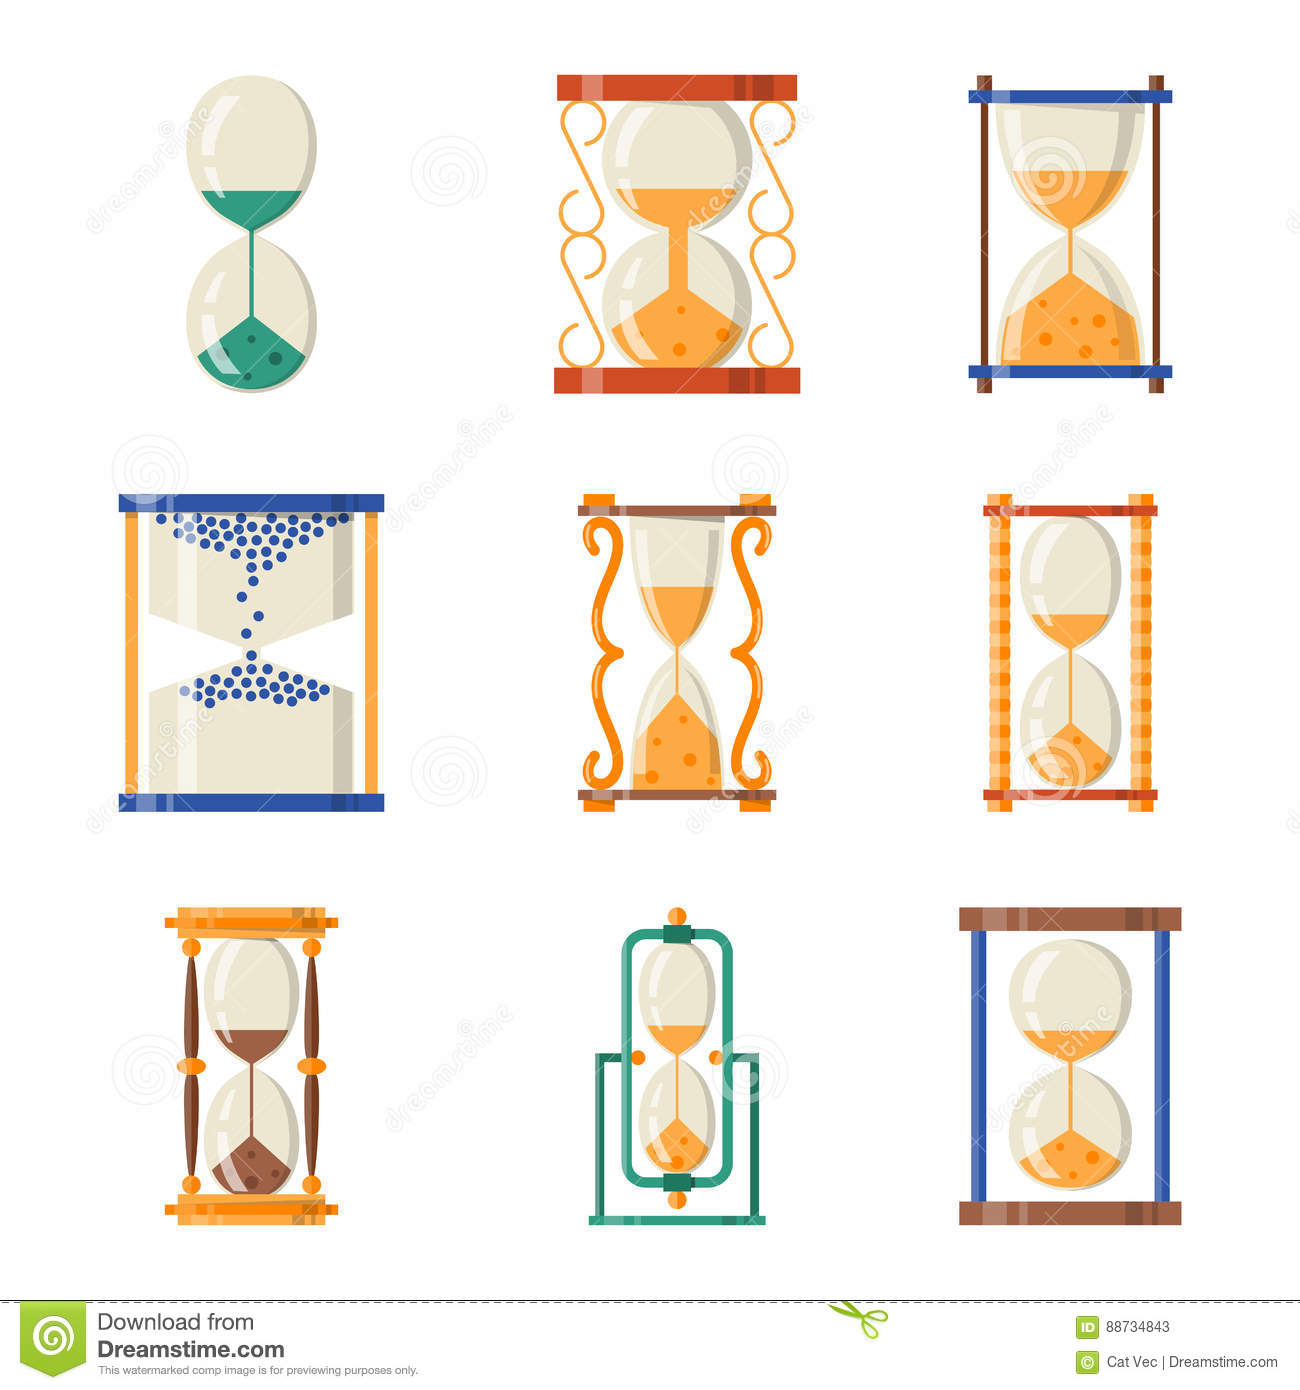 Sandglass icon time flat design history second old object and sand clock hourglass timer hour minute watch countdown